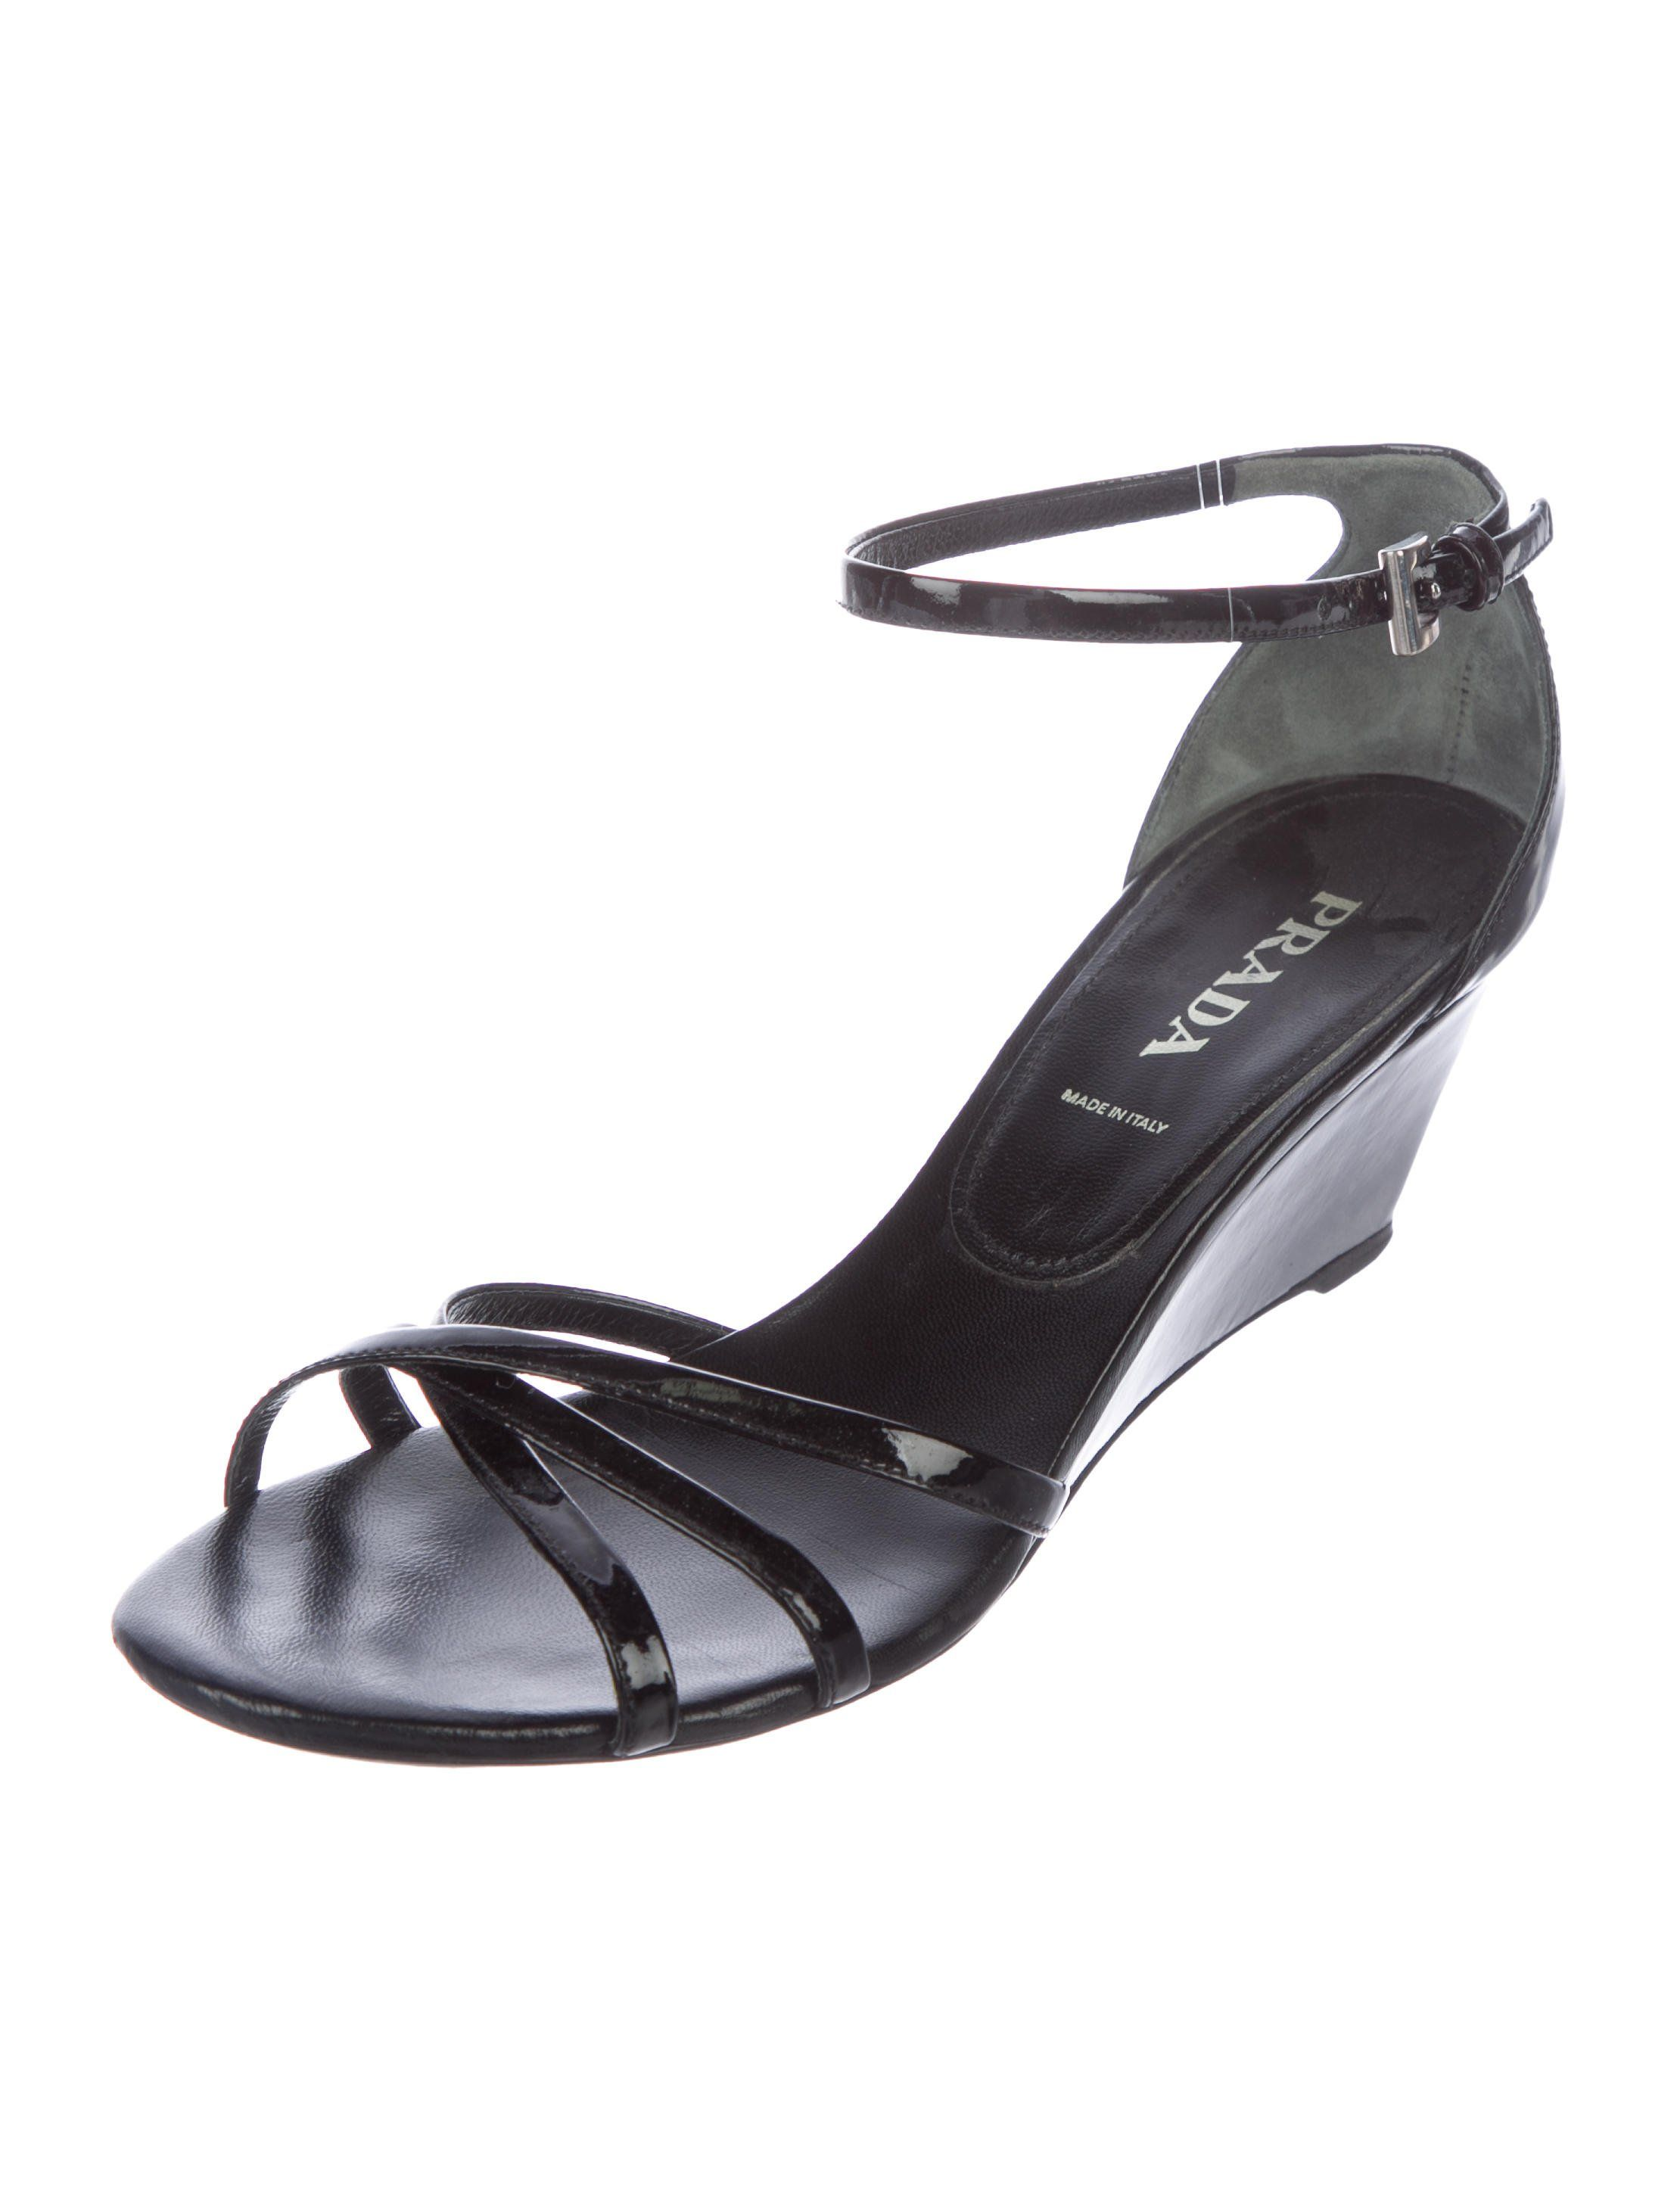 dee81291bc6b Black Vernice leather Prada round-toe wedge sandals with crossover straps  at vamps